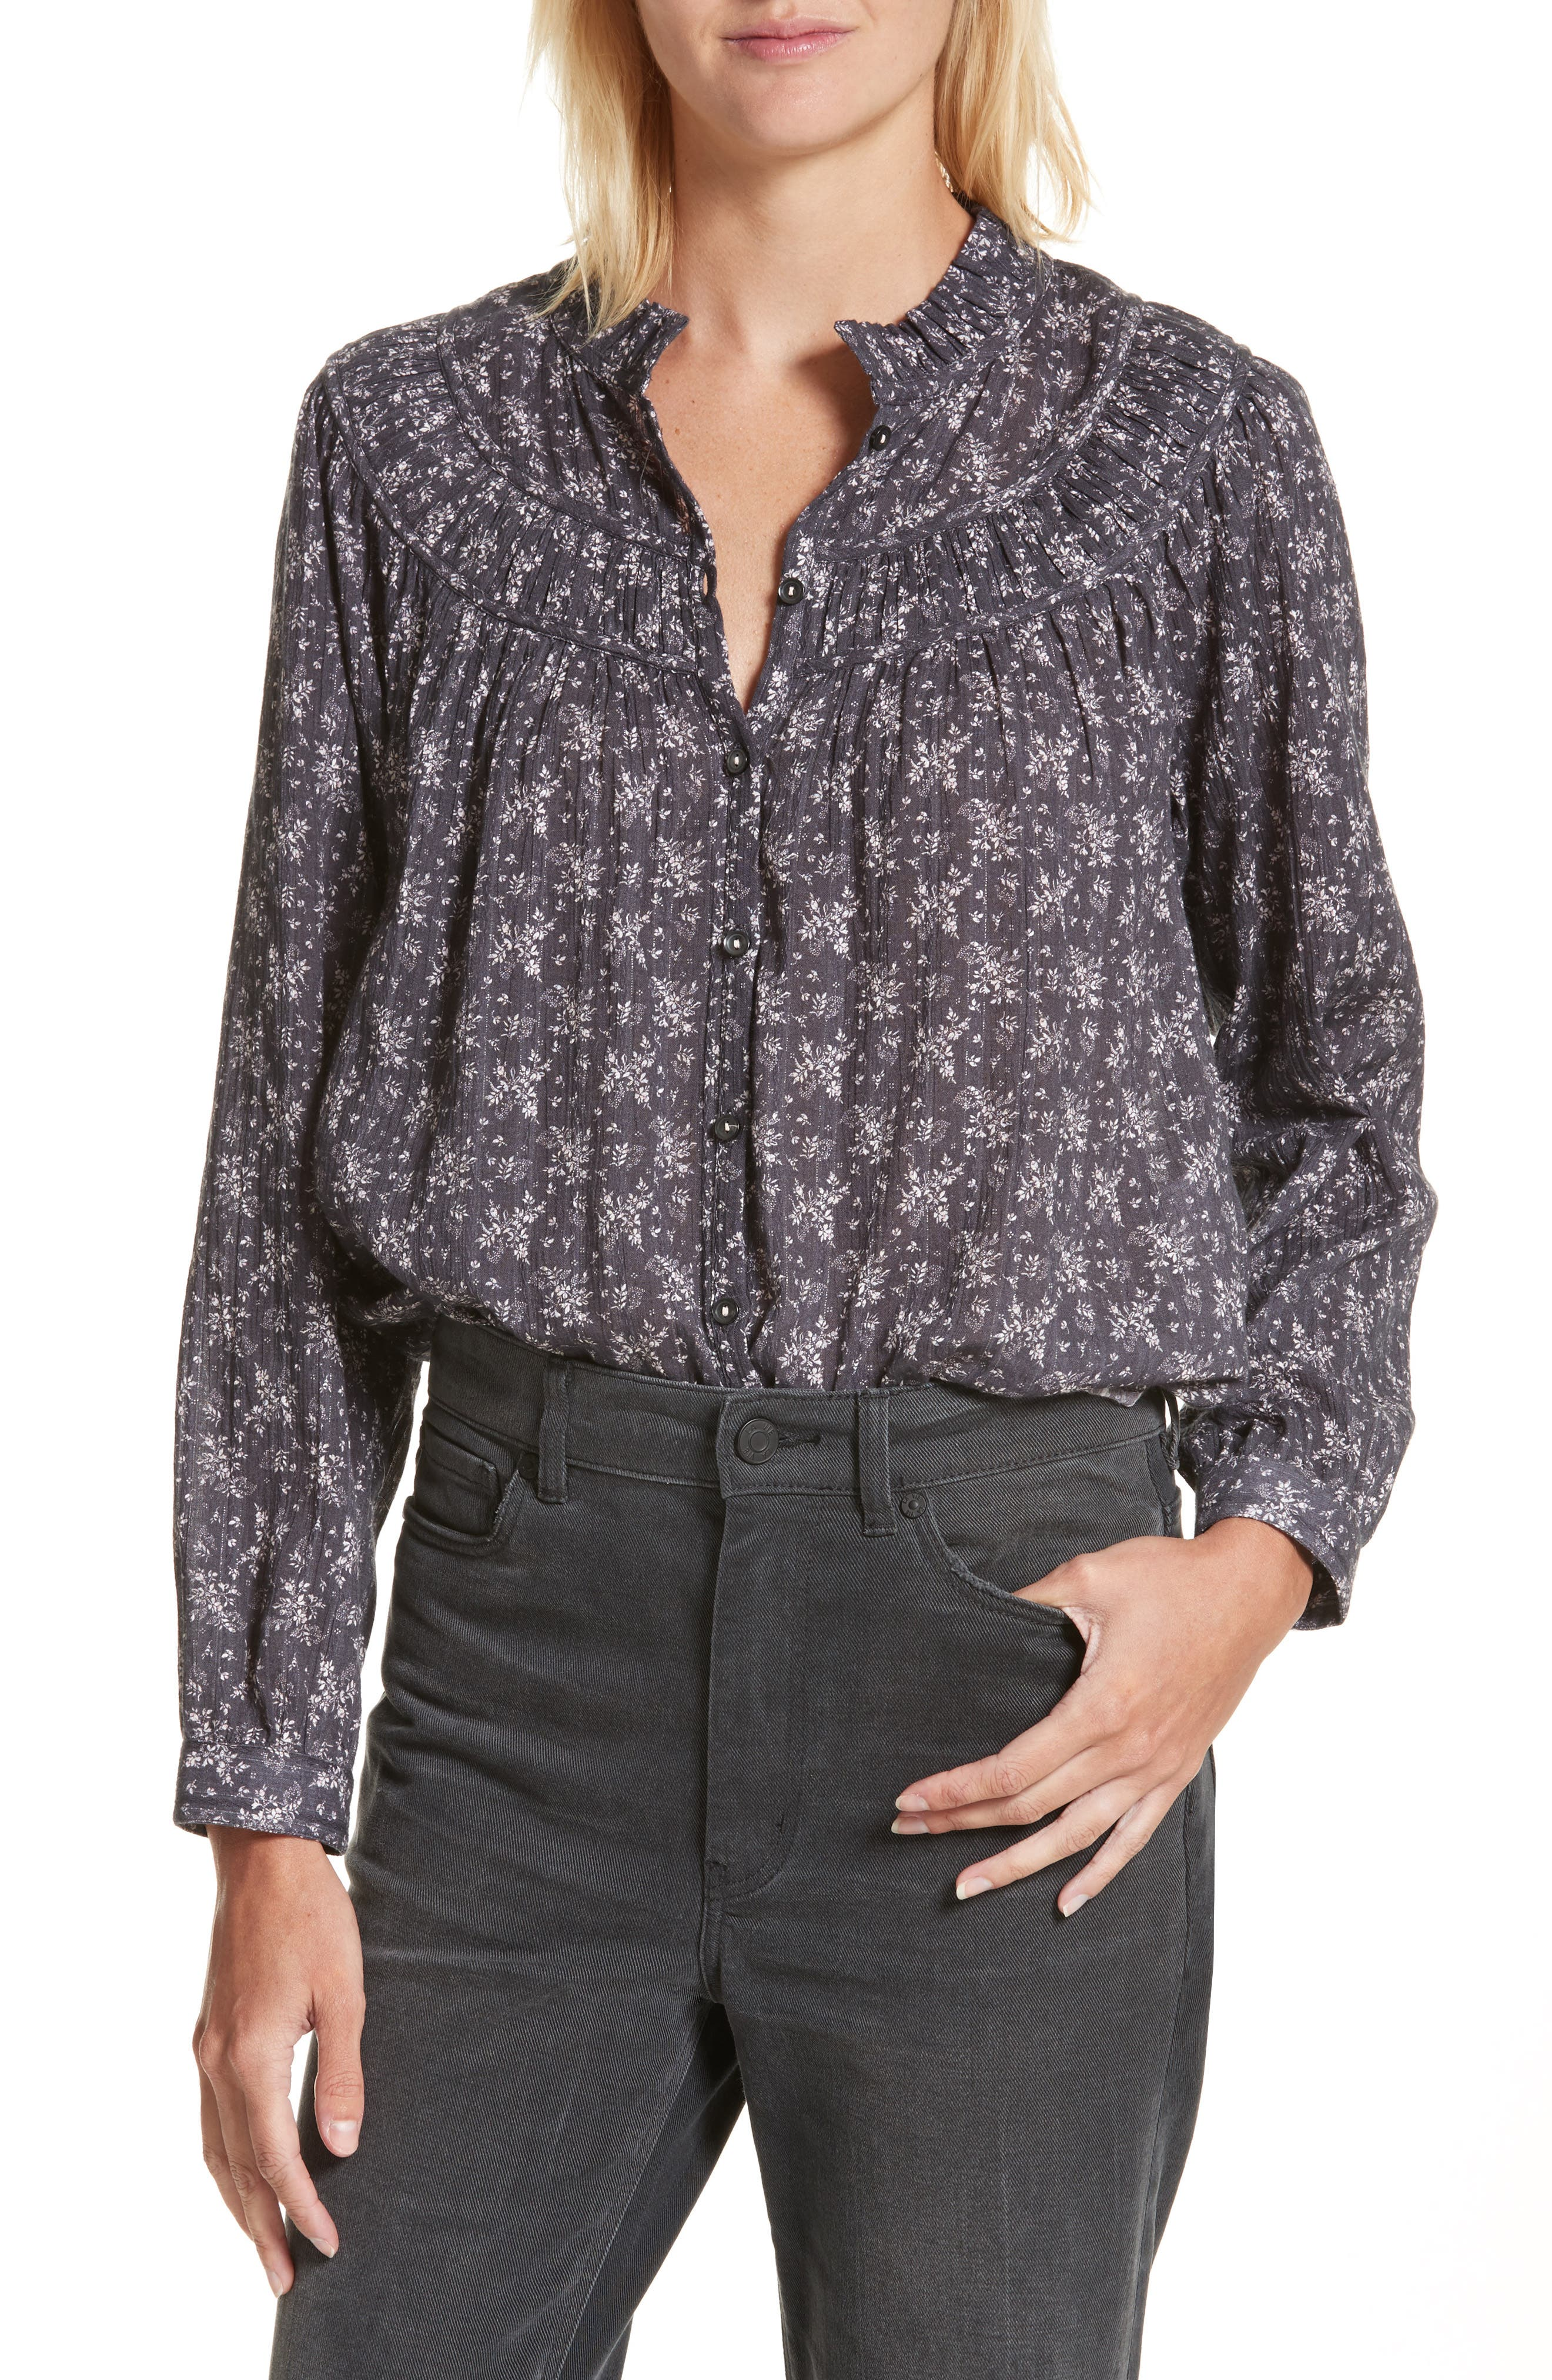 Main Image - La Vie Rebecca Taylor Angelique Long Sleeve Top